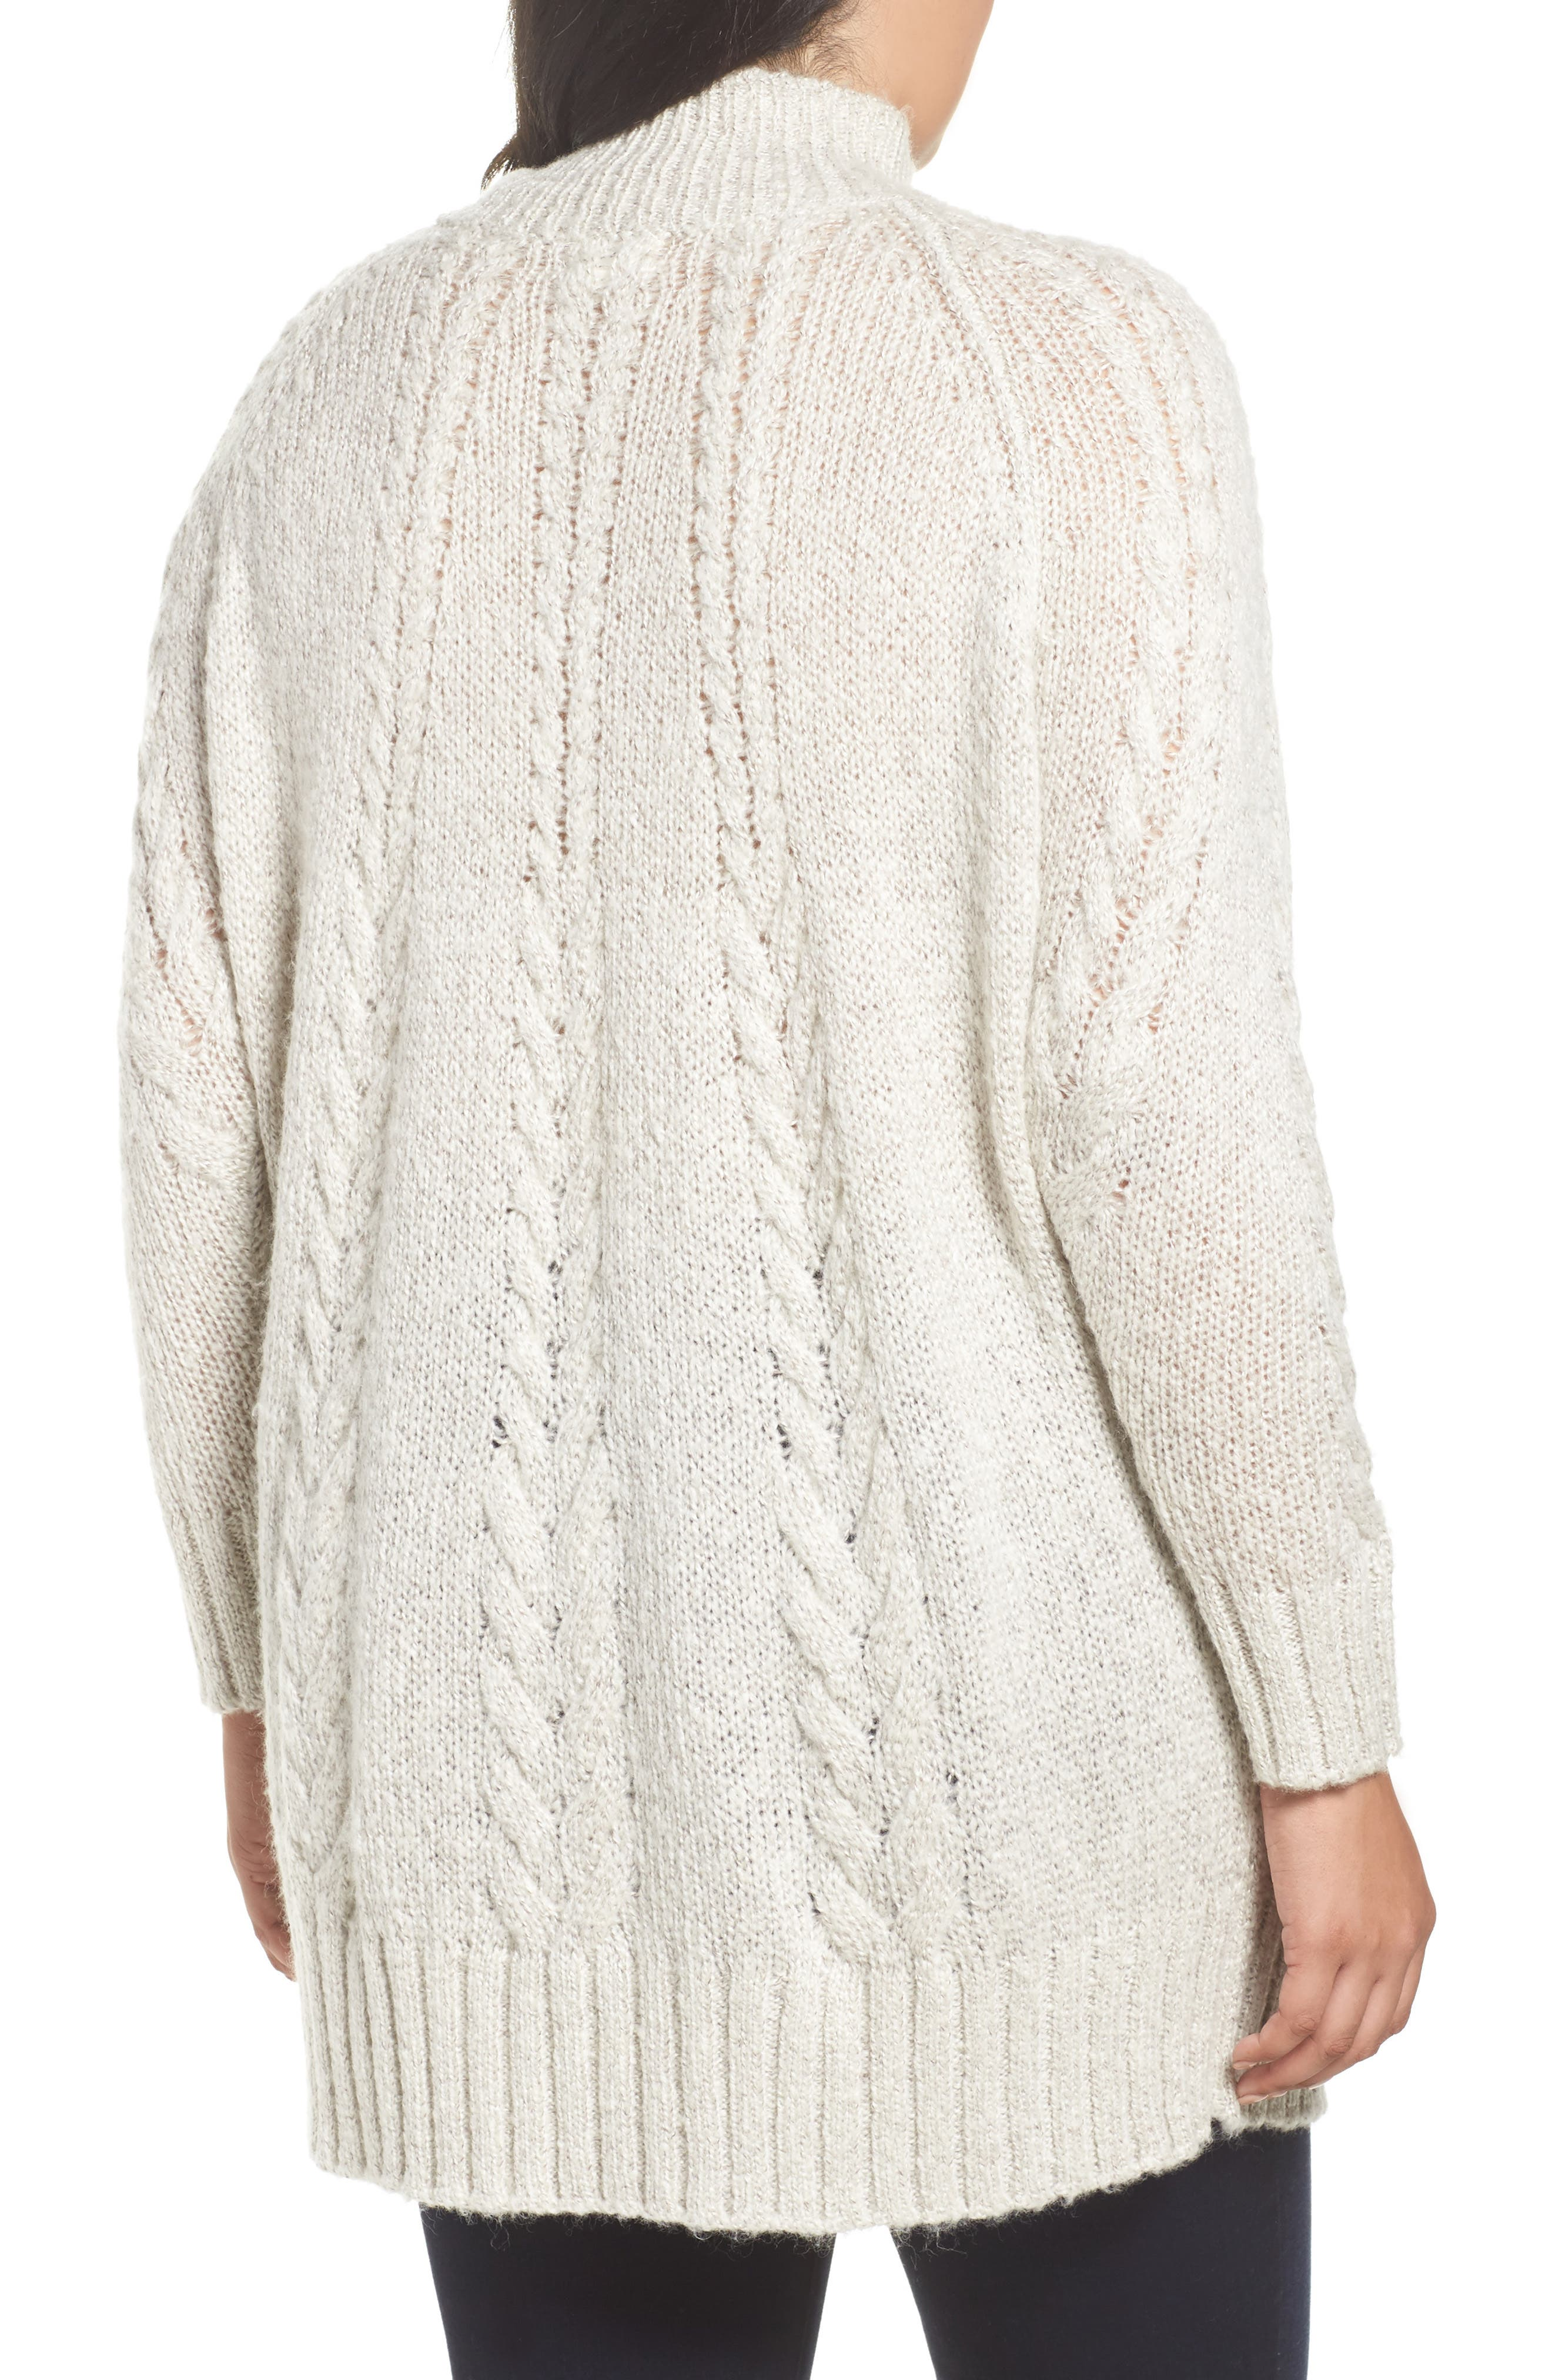 Cable Knit Tunic Sweater,                             Alternate thumbnail 2, color,                             BEIGE OATMEAL LIGHT HEATHER